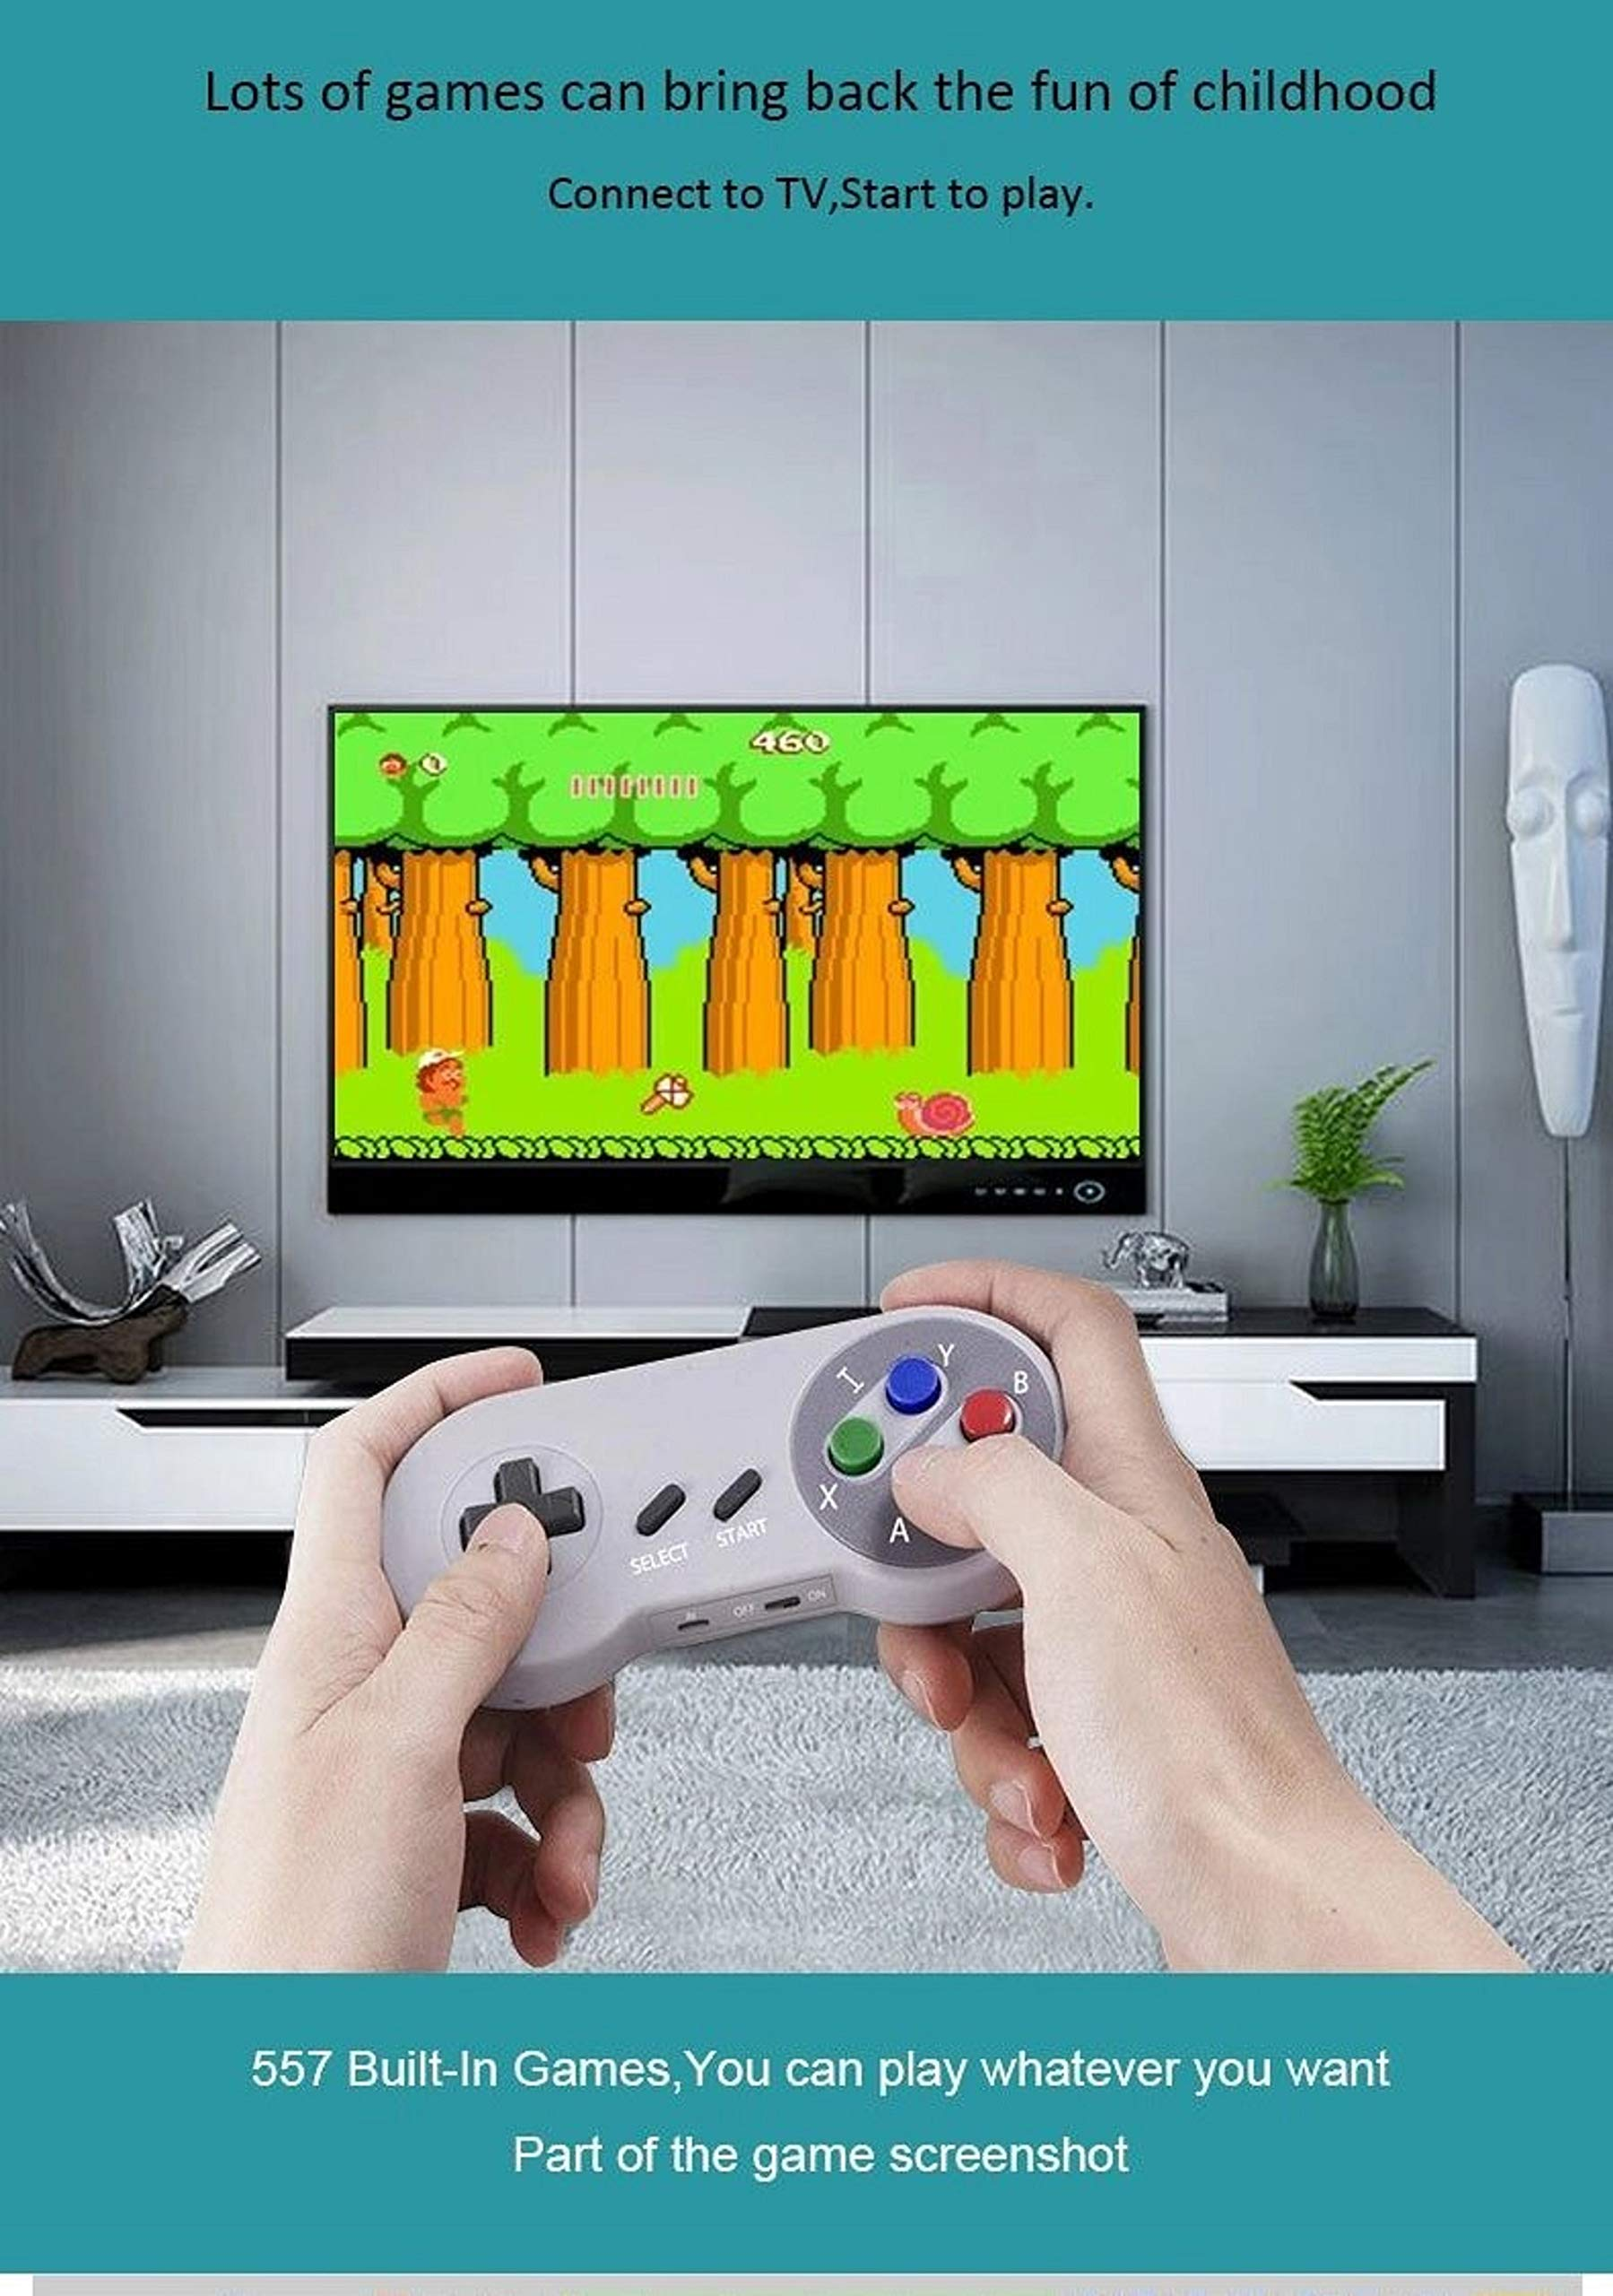 Old Arcade Classic Mini Game Consoles Classic Game Consoles Built-in 557 Games Video Games Handheld Game Player,AV Output,8-Bit , with 2.4 GHZ Wireless Controllers by Happy Zane (Image #1)